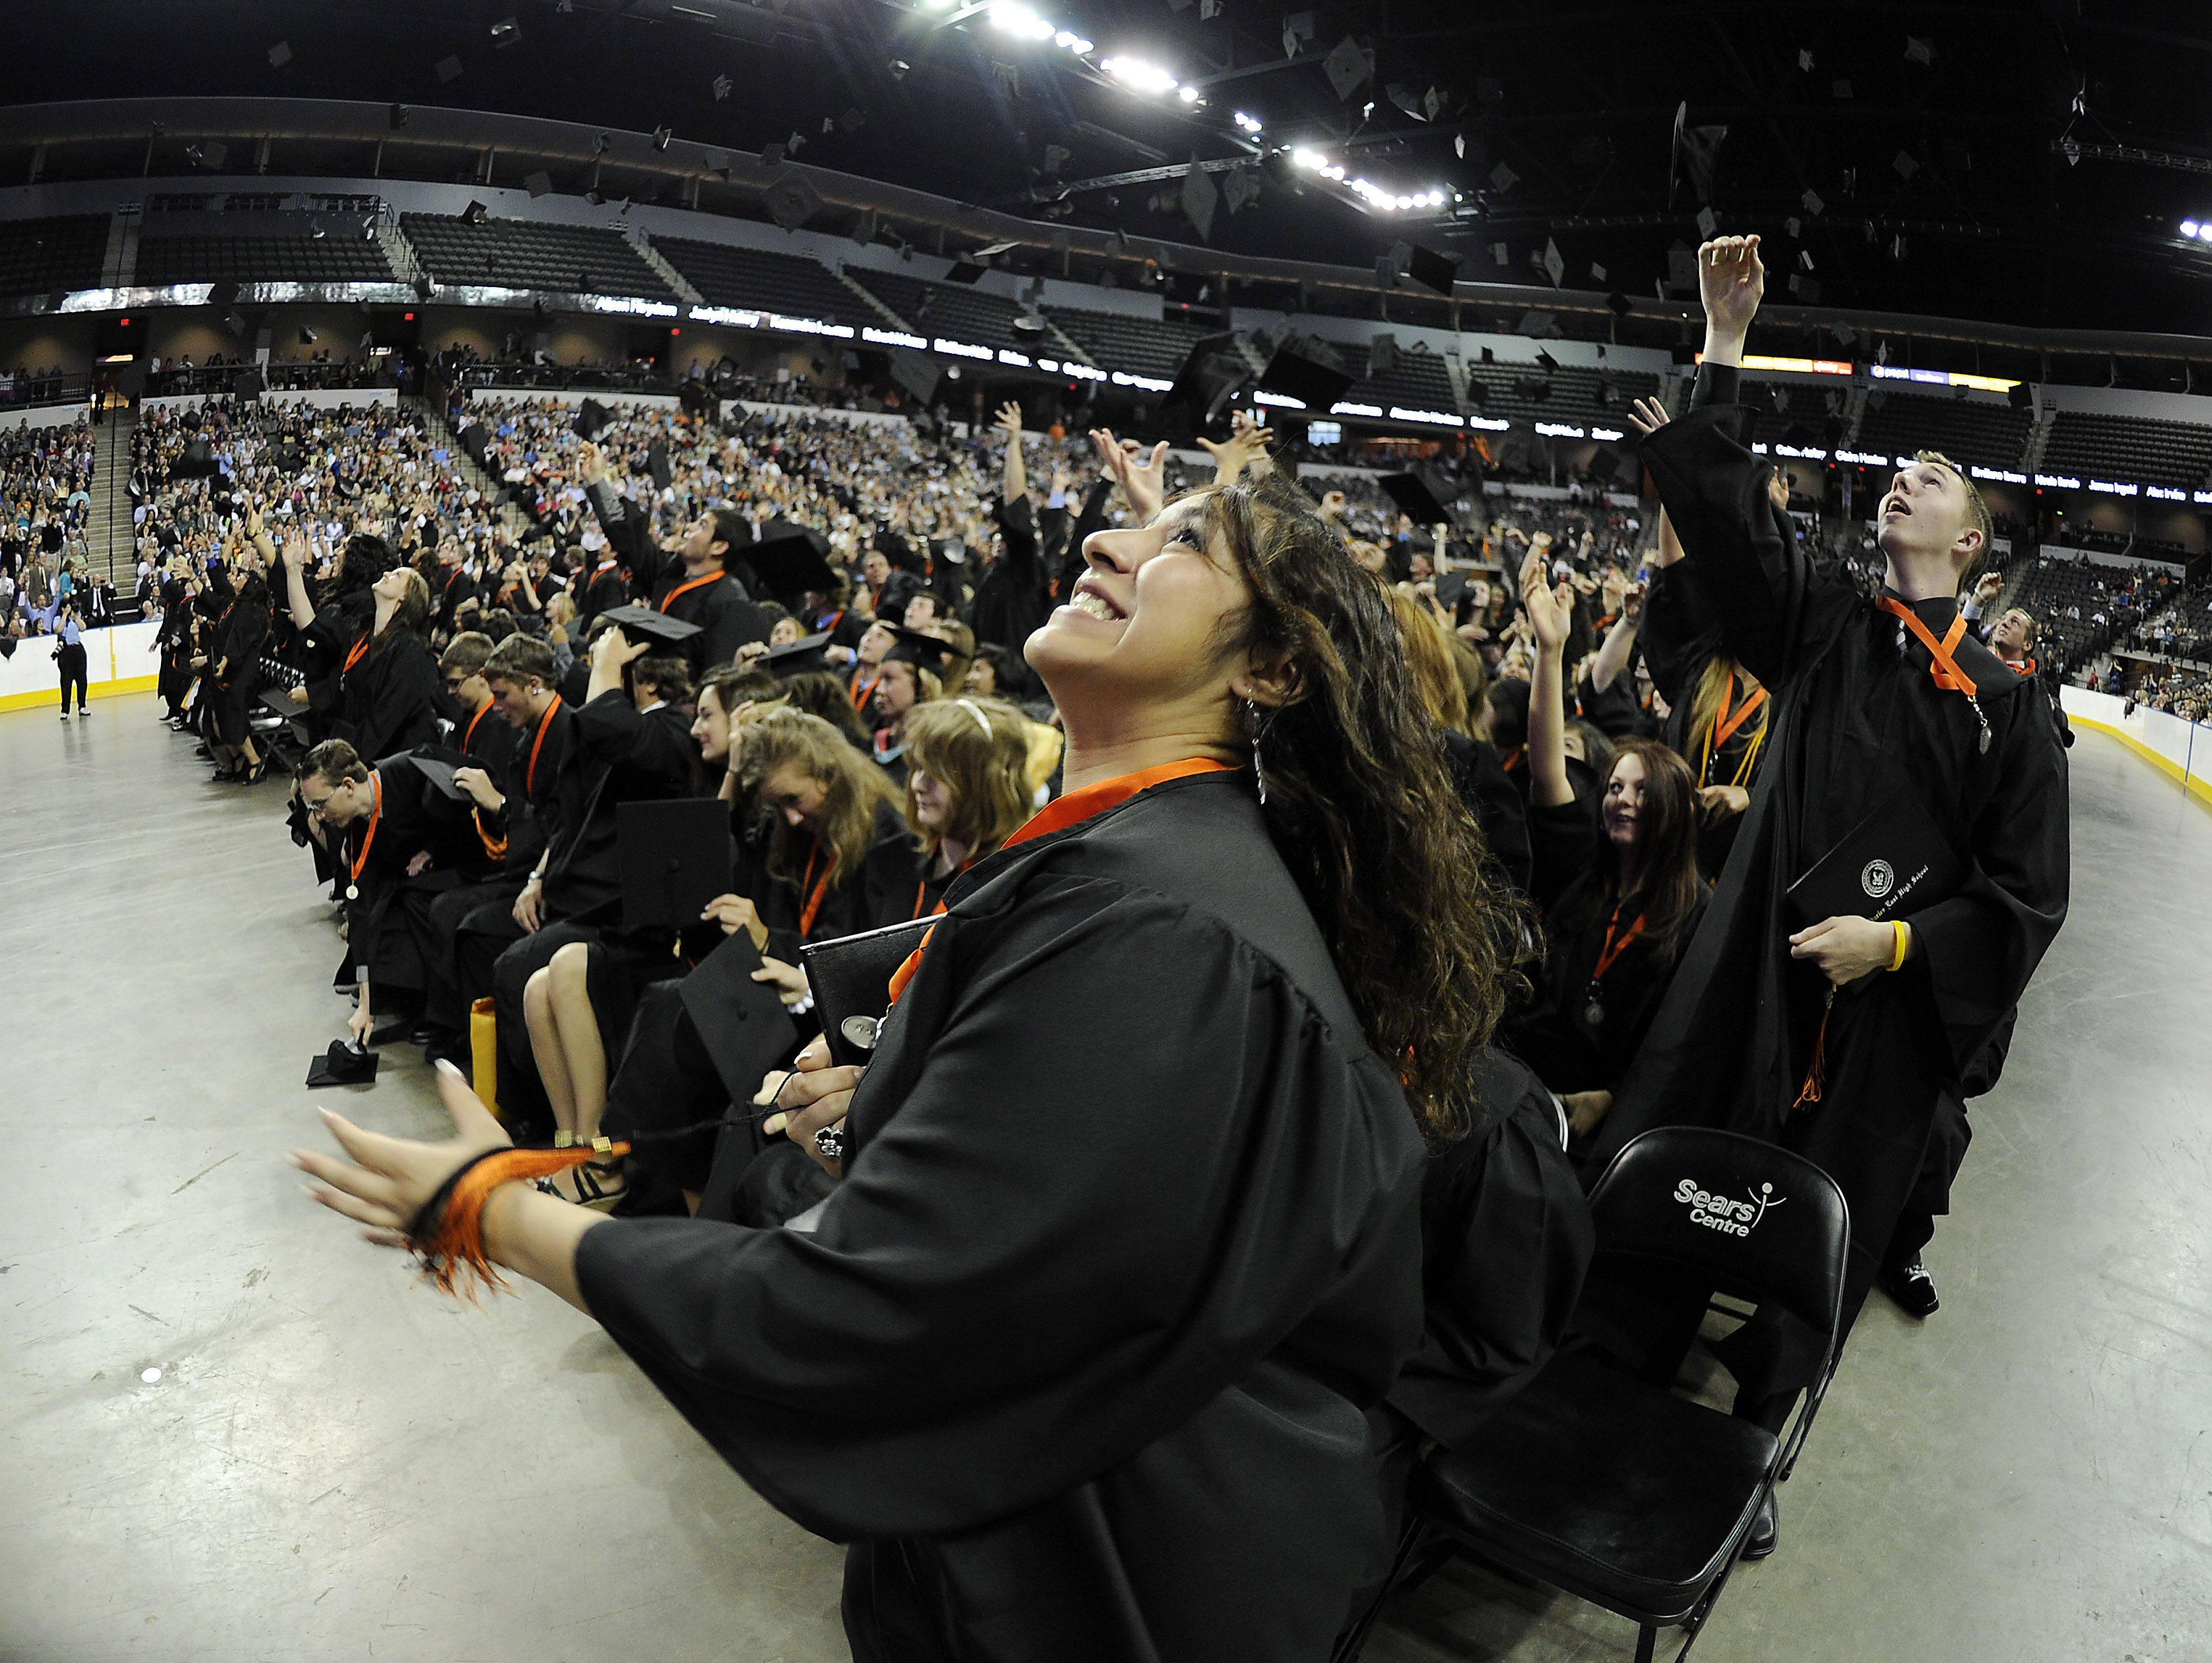 St. Charles East's Priscilla Lachica looks up for her commencement cap among hundreds of others skyward after they became official graduates at the Sears Centre on Sunday.